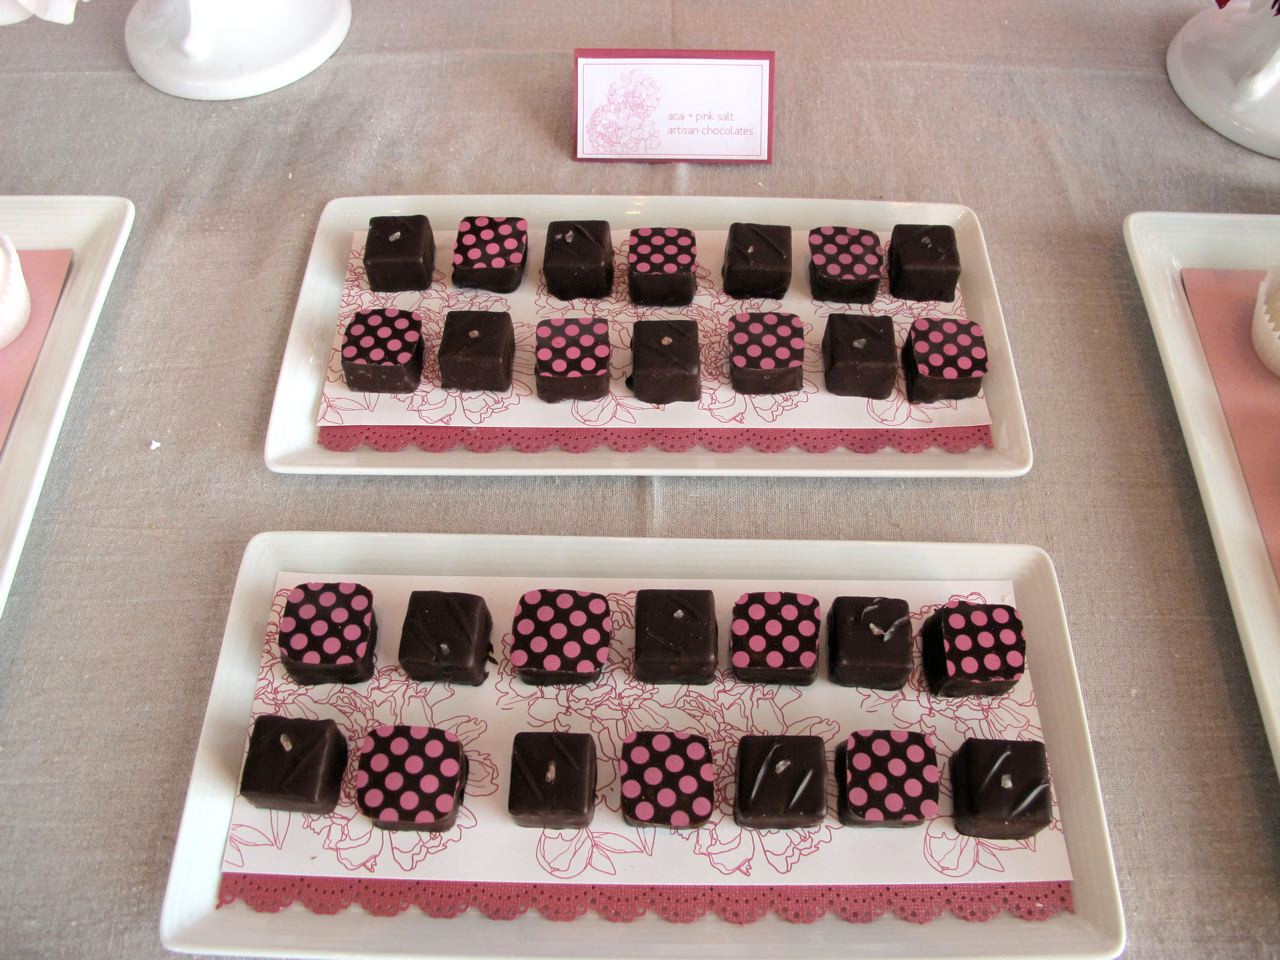 Pink Salt and Acai Pomegranate chocolate